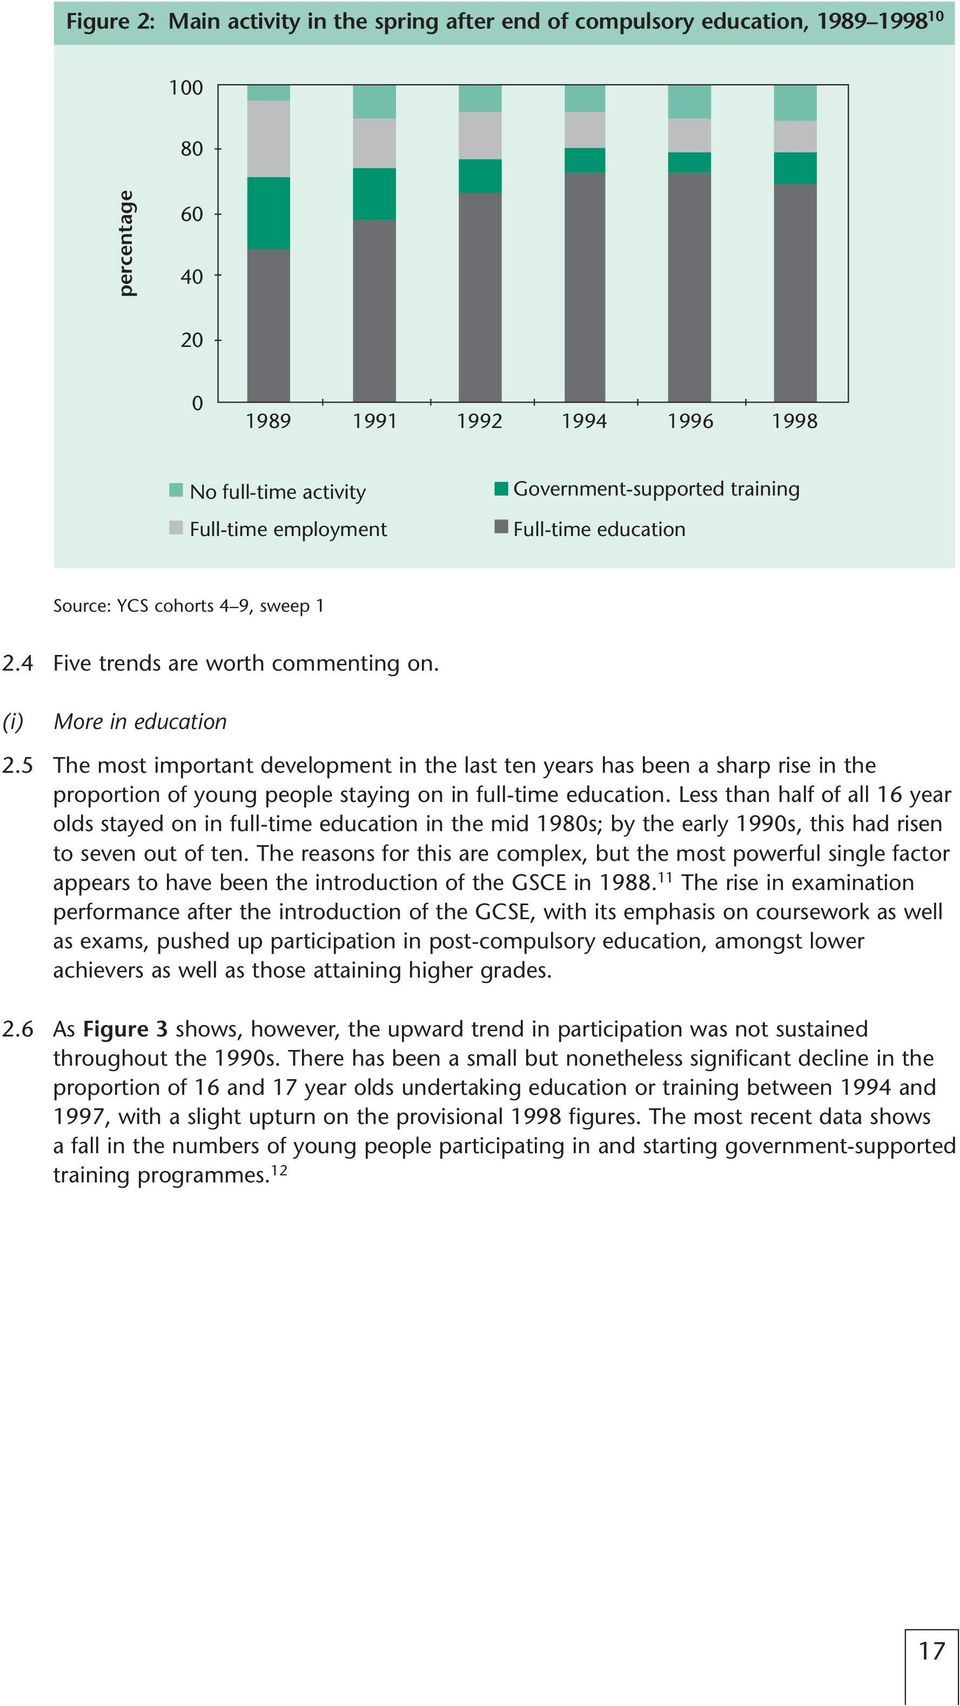 5 The most important development in the last ten years has been a sharp rise in the proportion of young people staying on in full-time education.